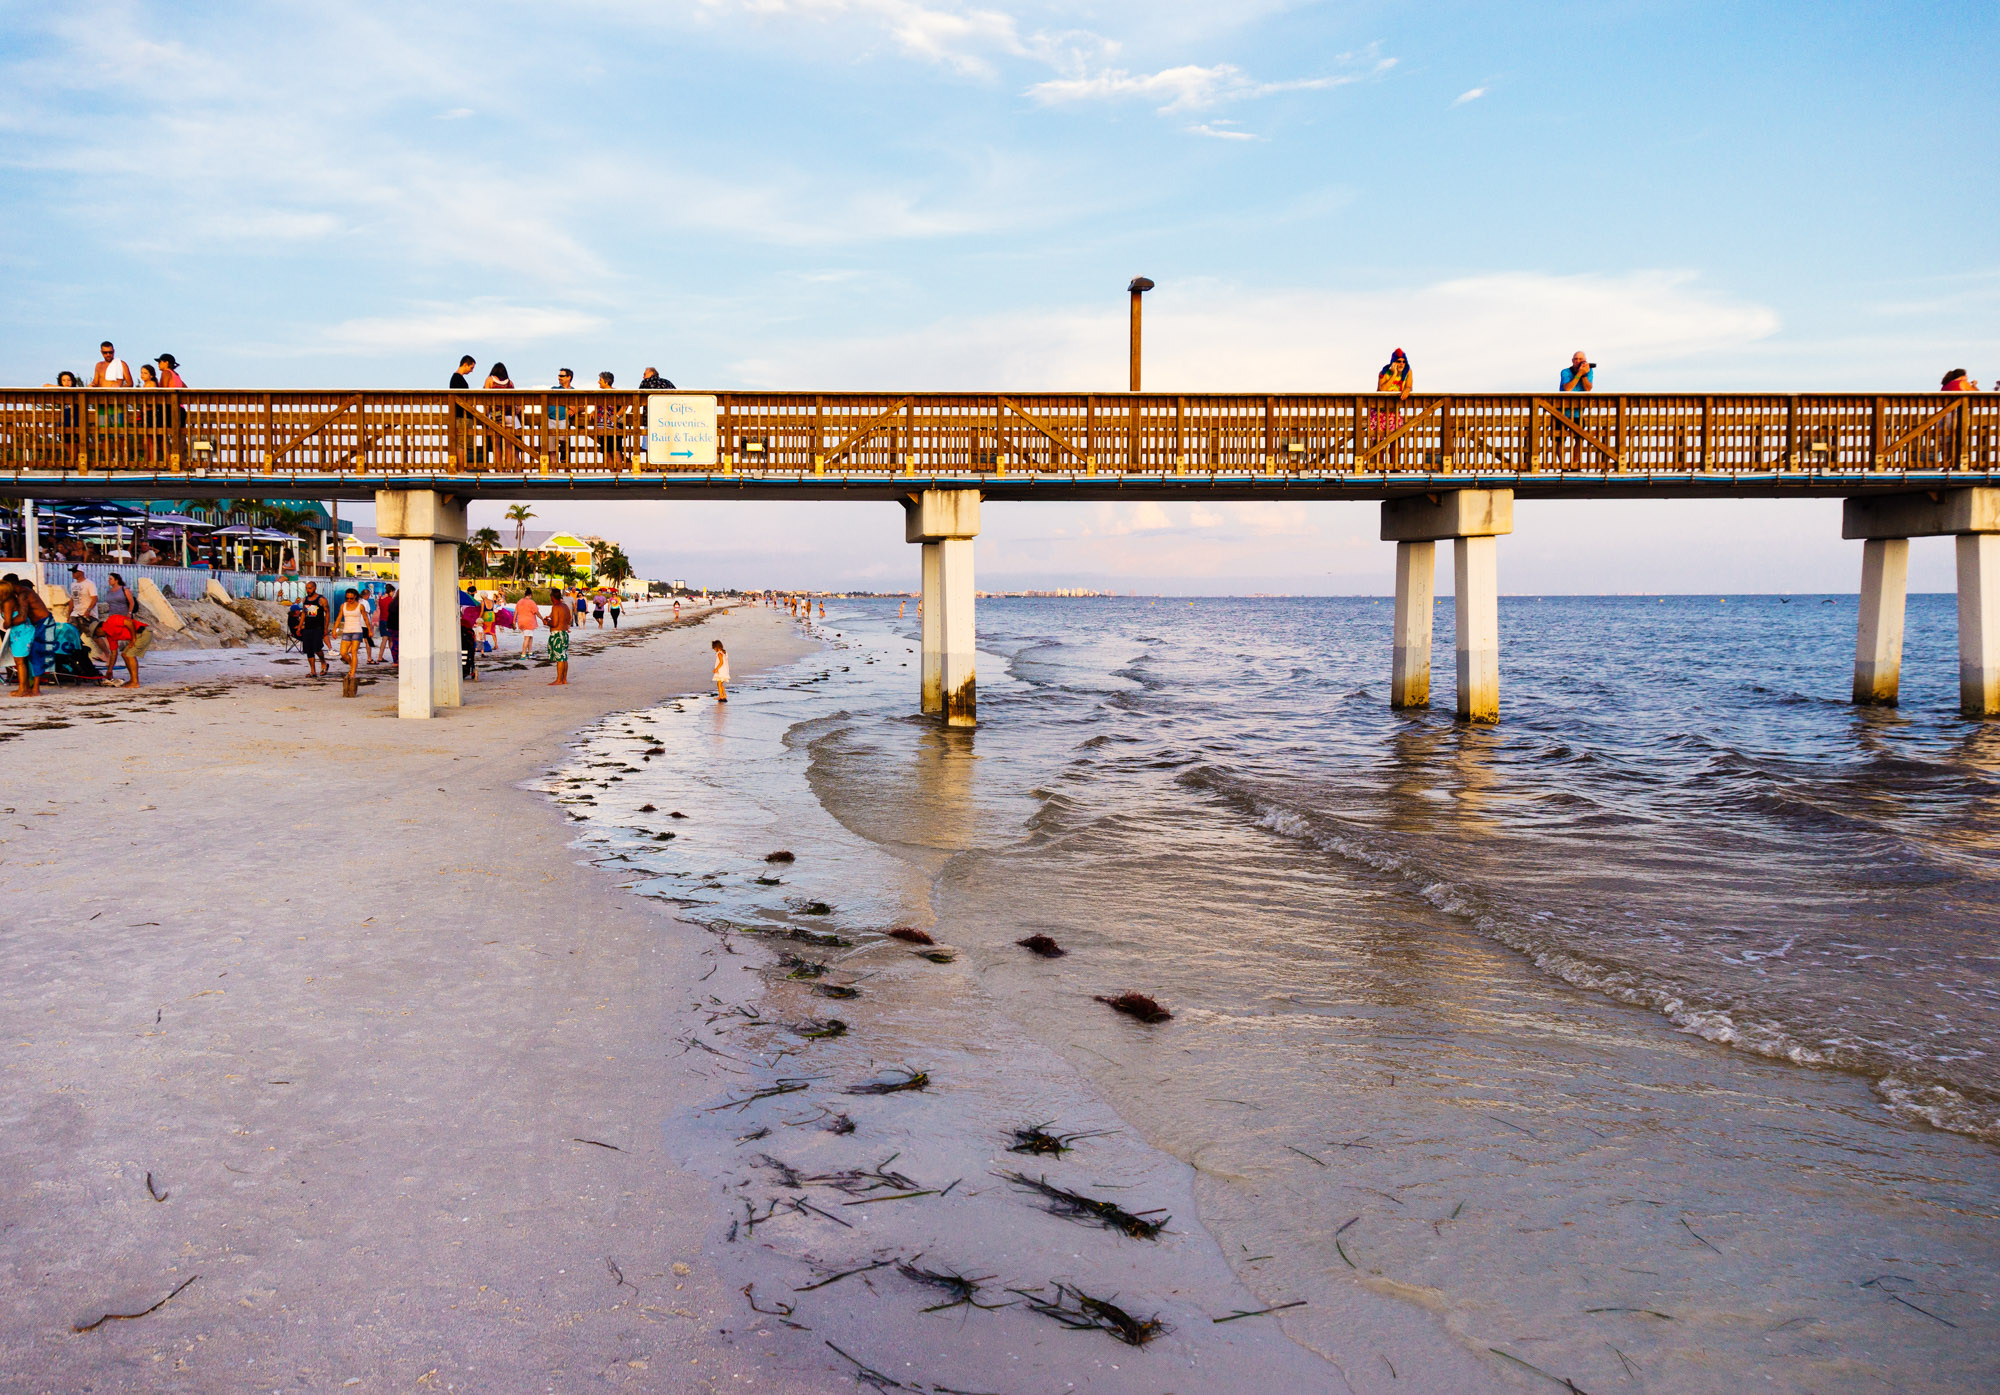 Jeff On The Road - The Beaches of Fort Myers and Sanibel Island